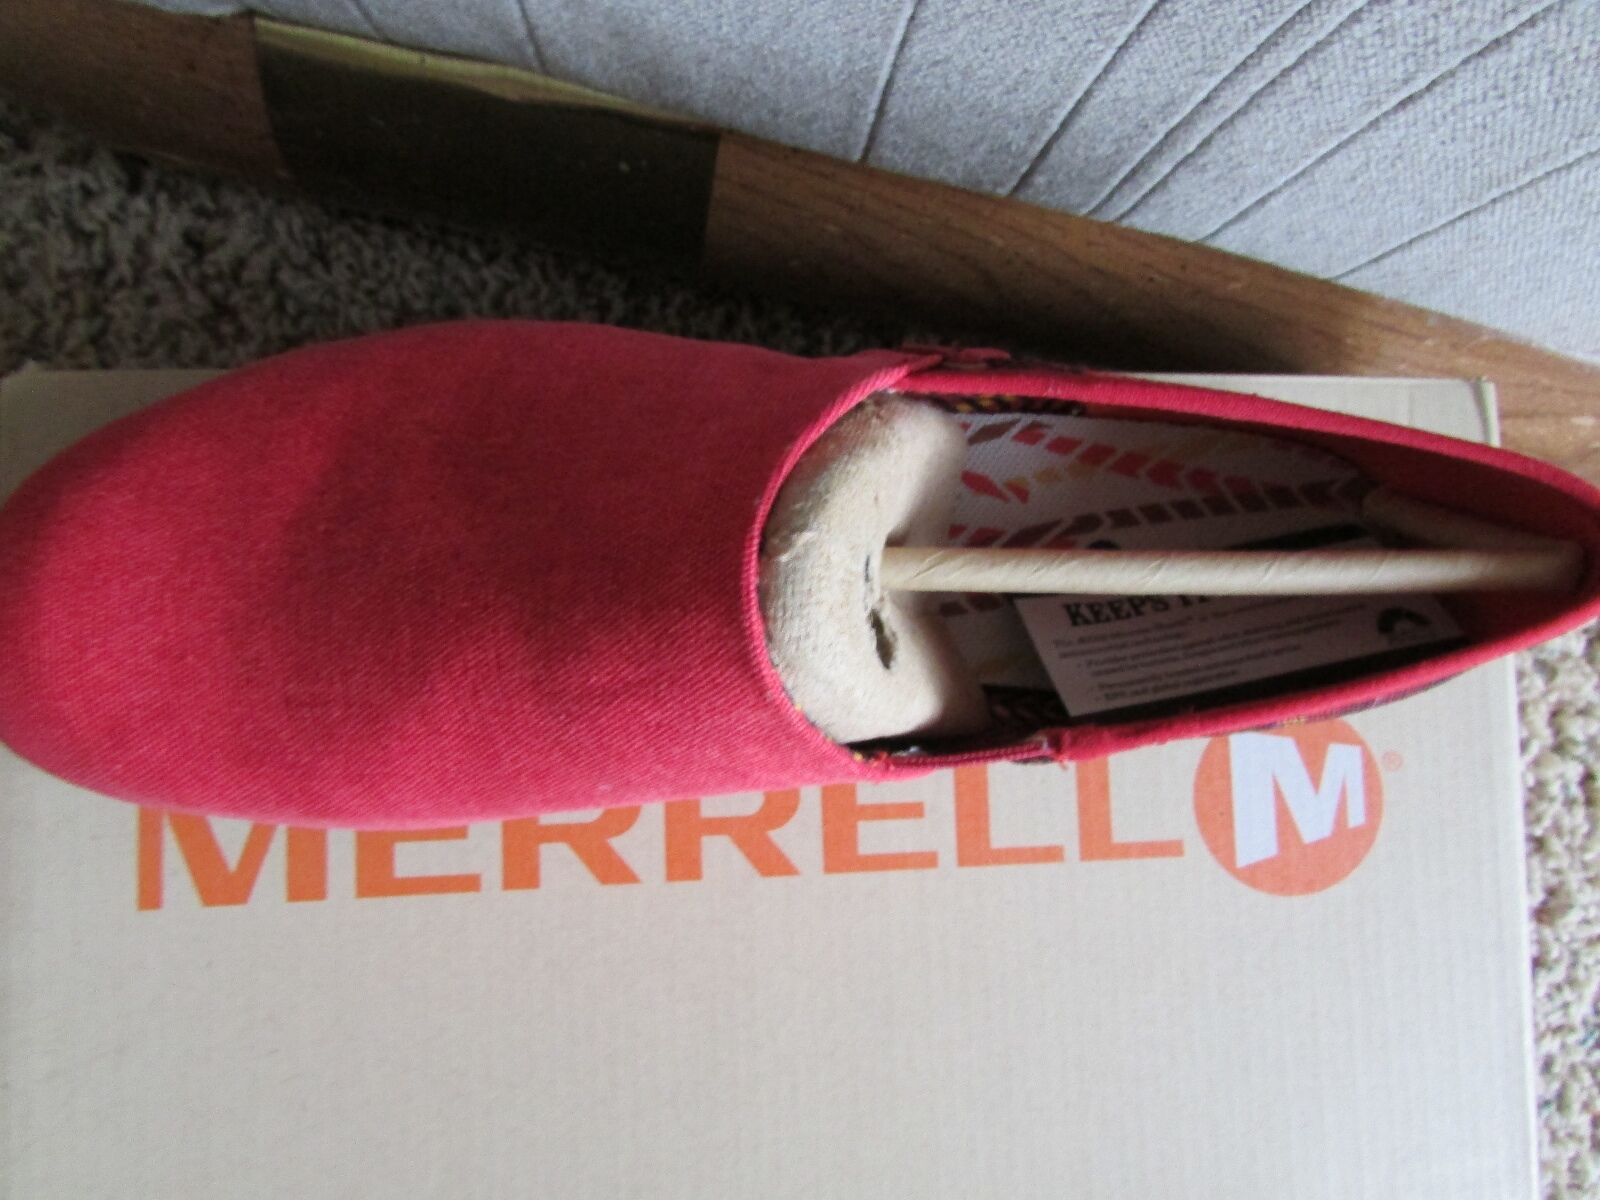 NEW MERRELL OLEANDER RED Donna SLIP ON LOAFER SHOES Donna RED 9  J57666  FREE SHIP! 98cfce